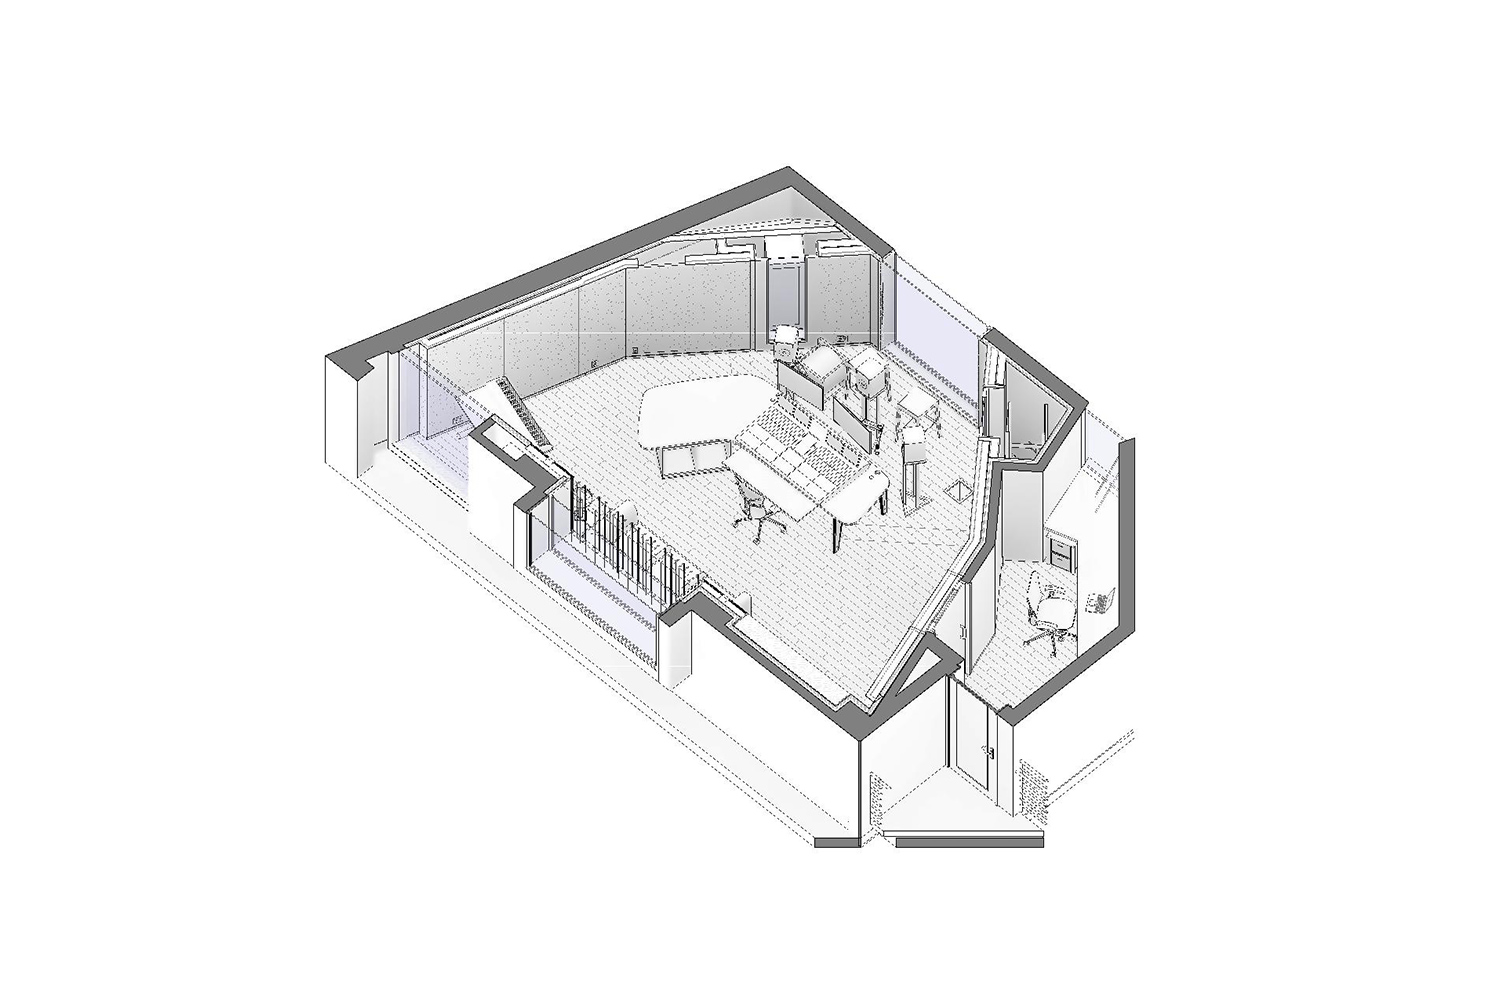 World-renown composer for films Carter Burwell returned to John Storyk and commissioned WSDG a new recording studio at his ultra modern Maziar Behrooz-designed home. Axonometric view.